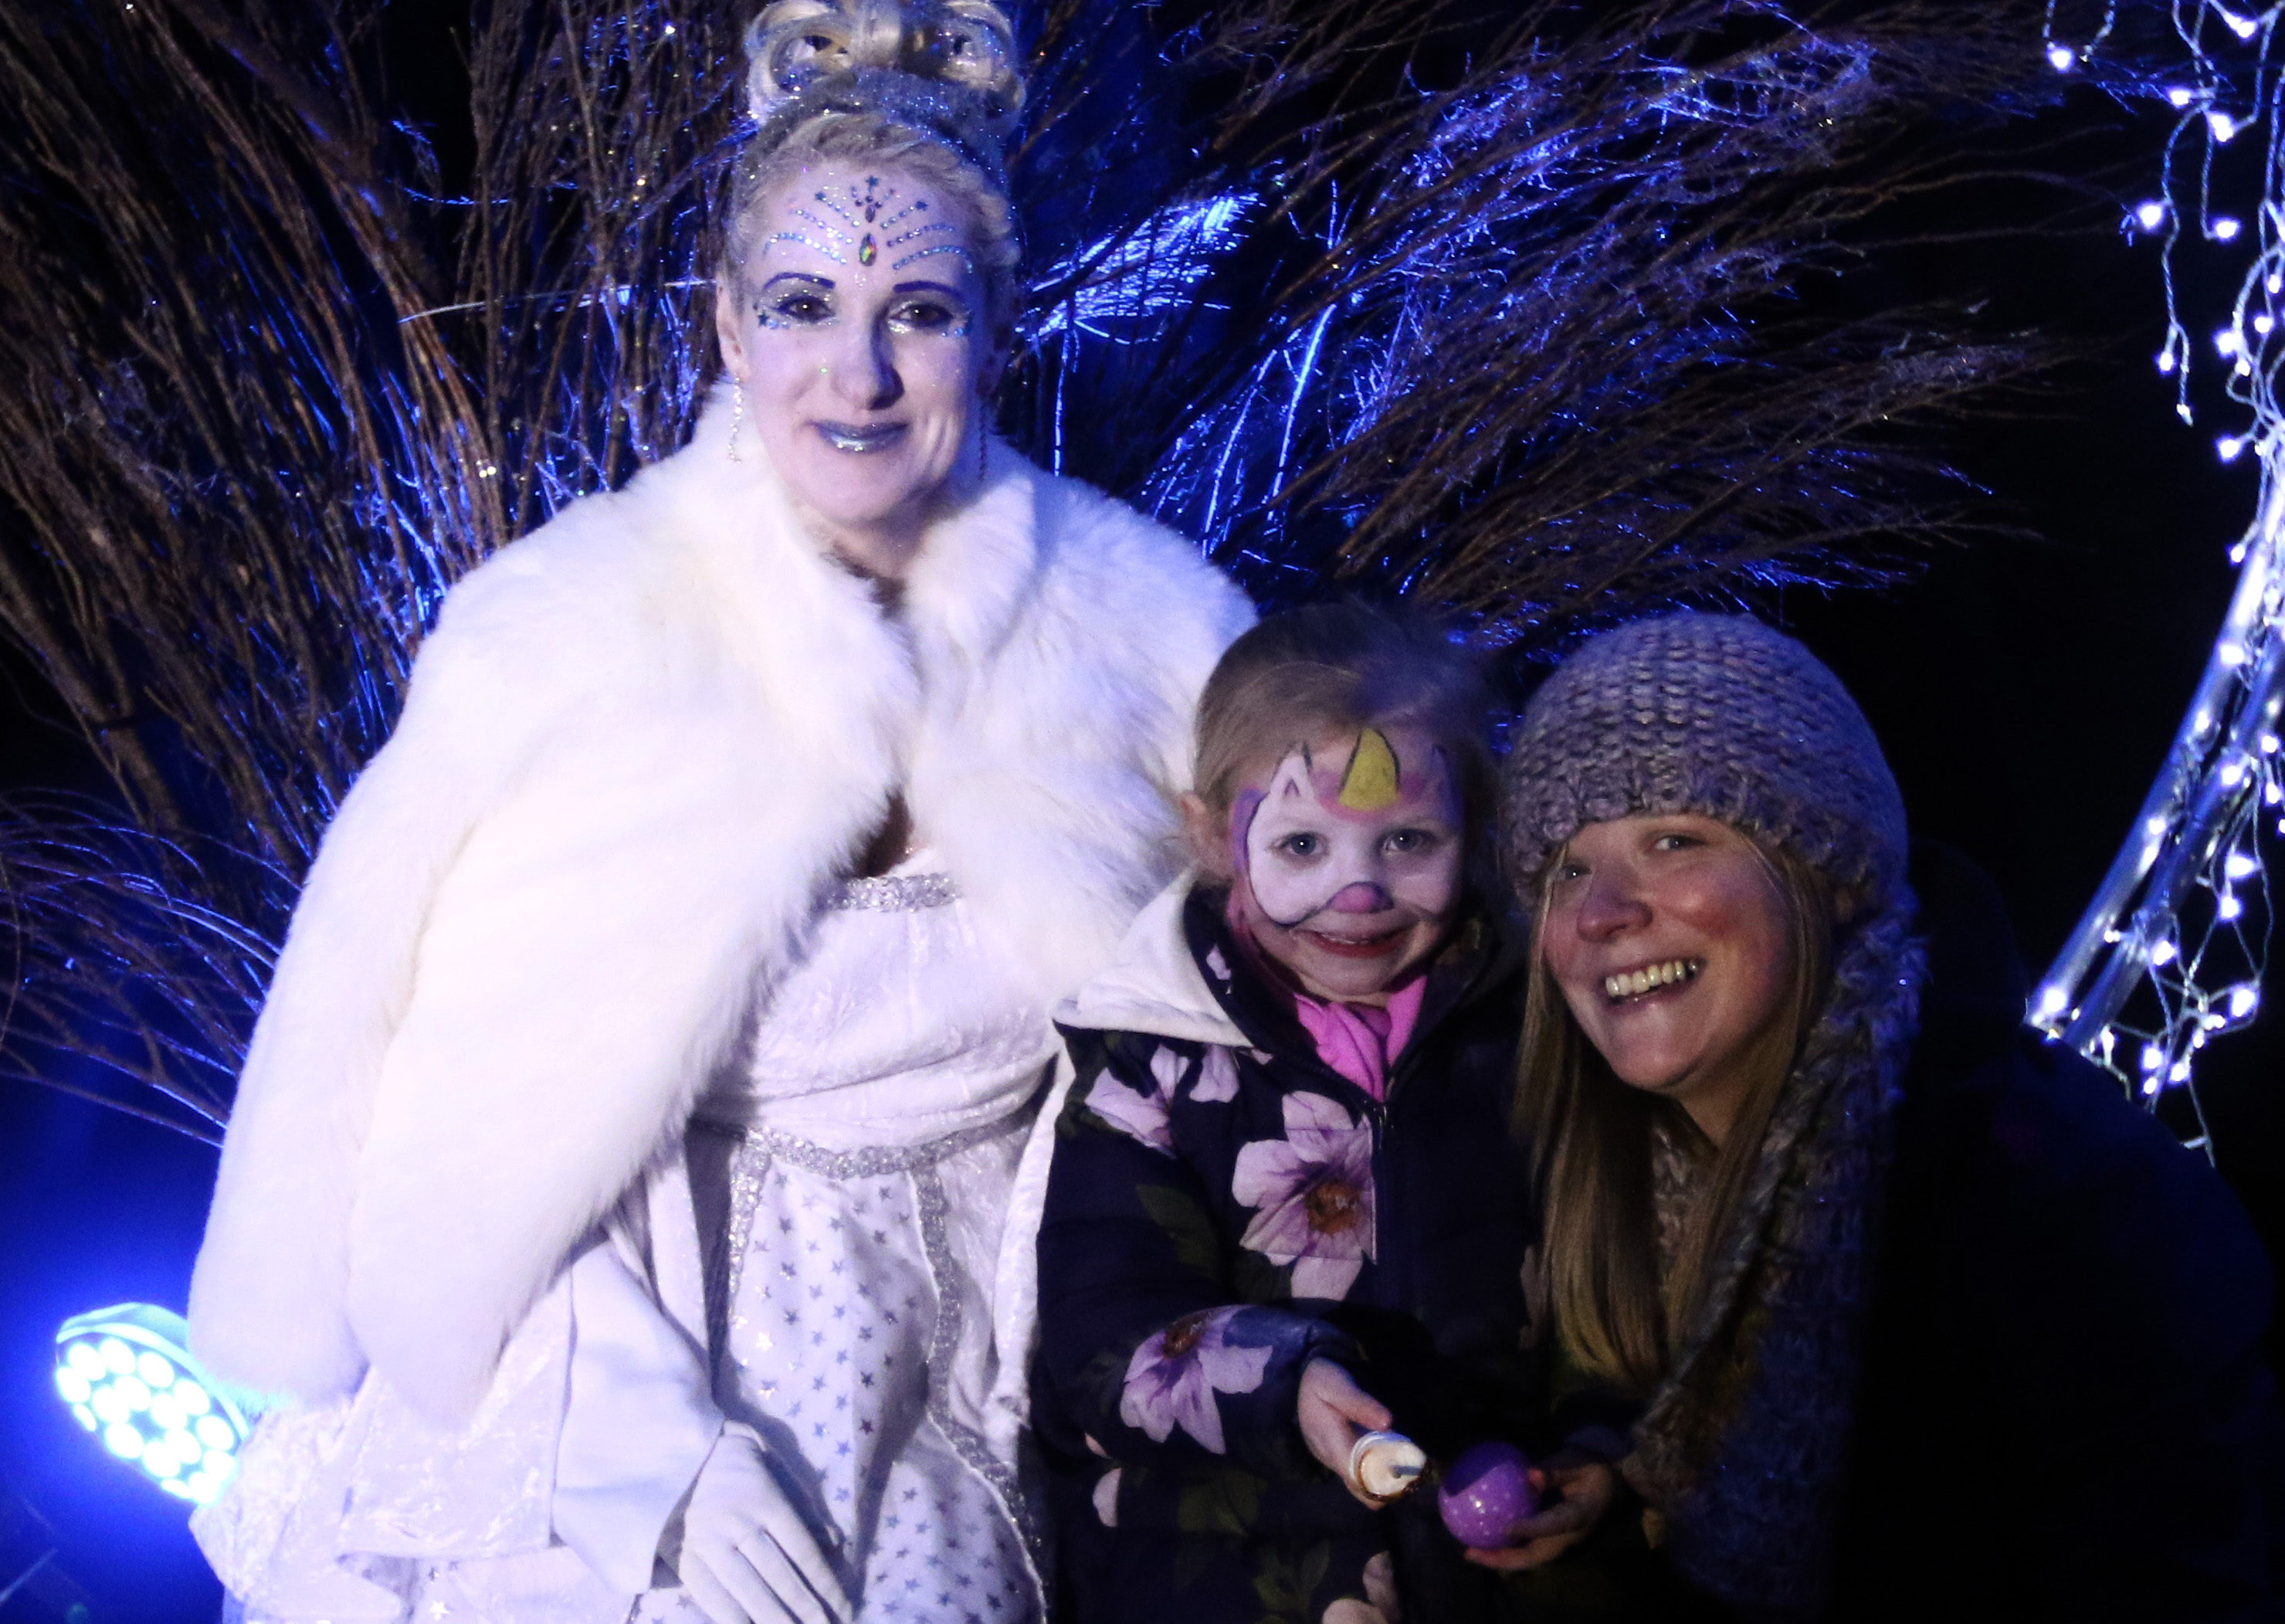 Leila MacGillivray and Nicola Gemmell excited to meet Fairy Queen (Dorothy Simpson) in her ice palace.